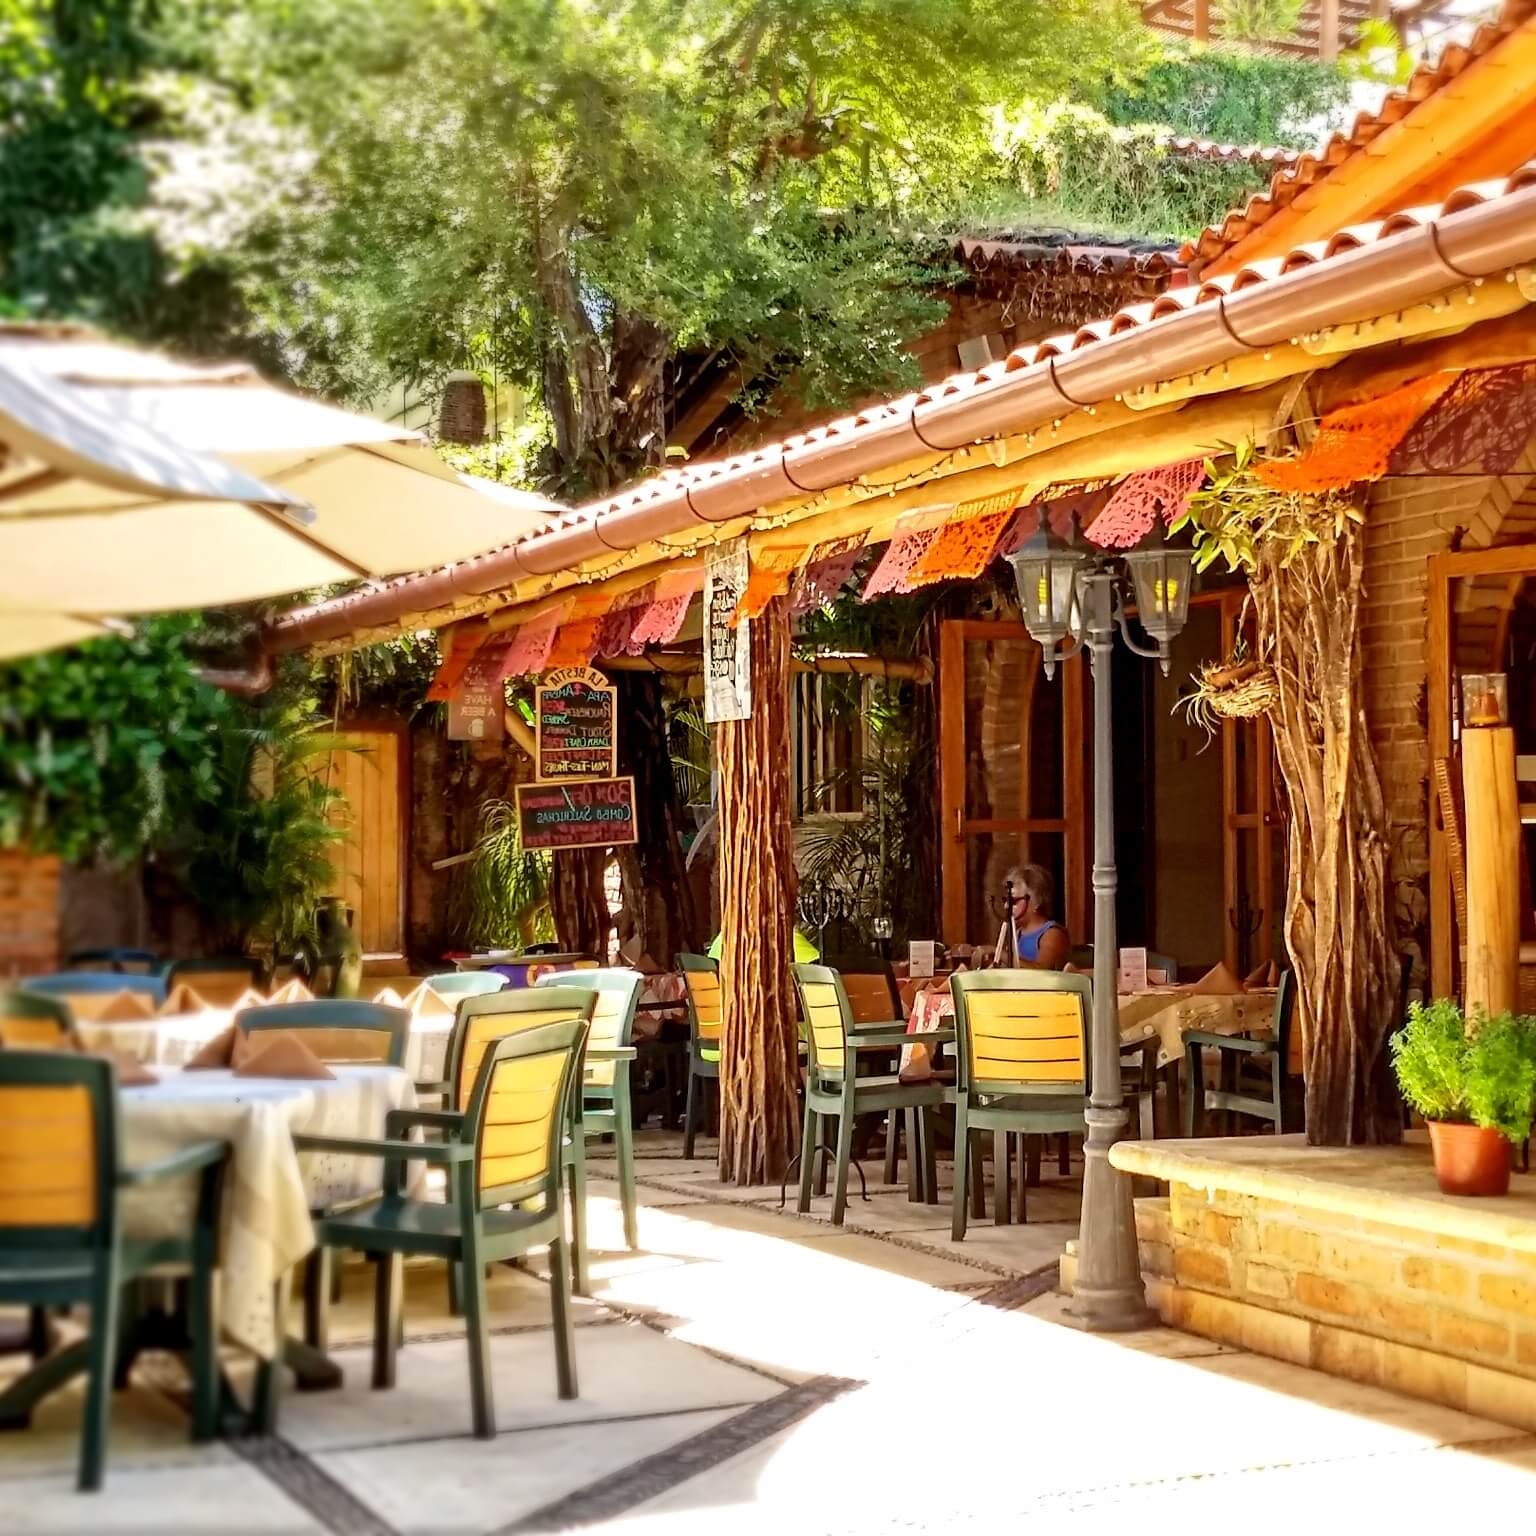 The Hacienda Alemana restaurant